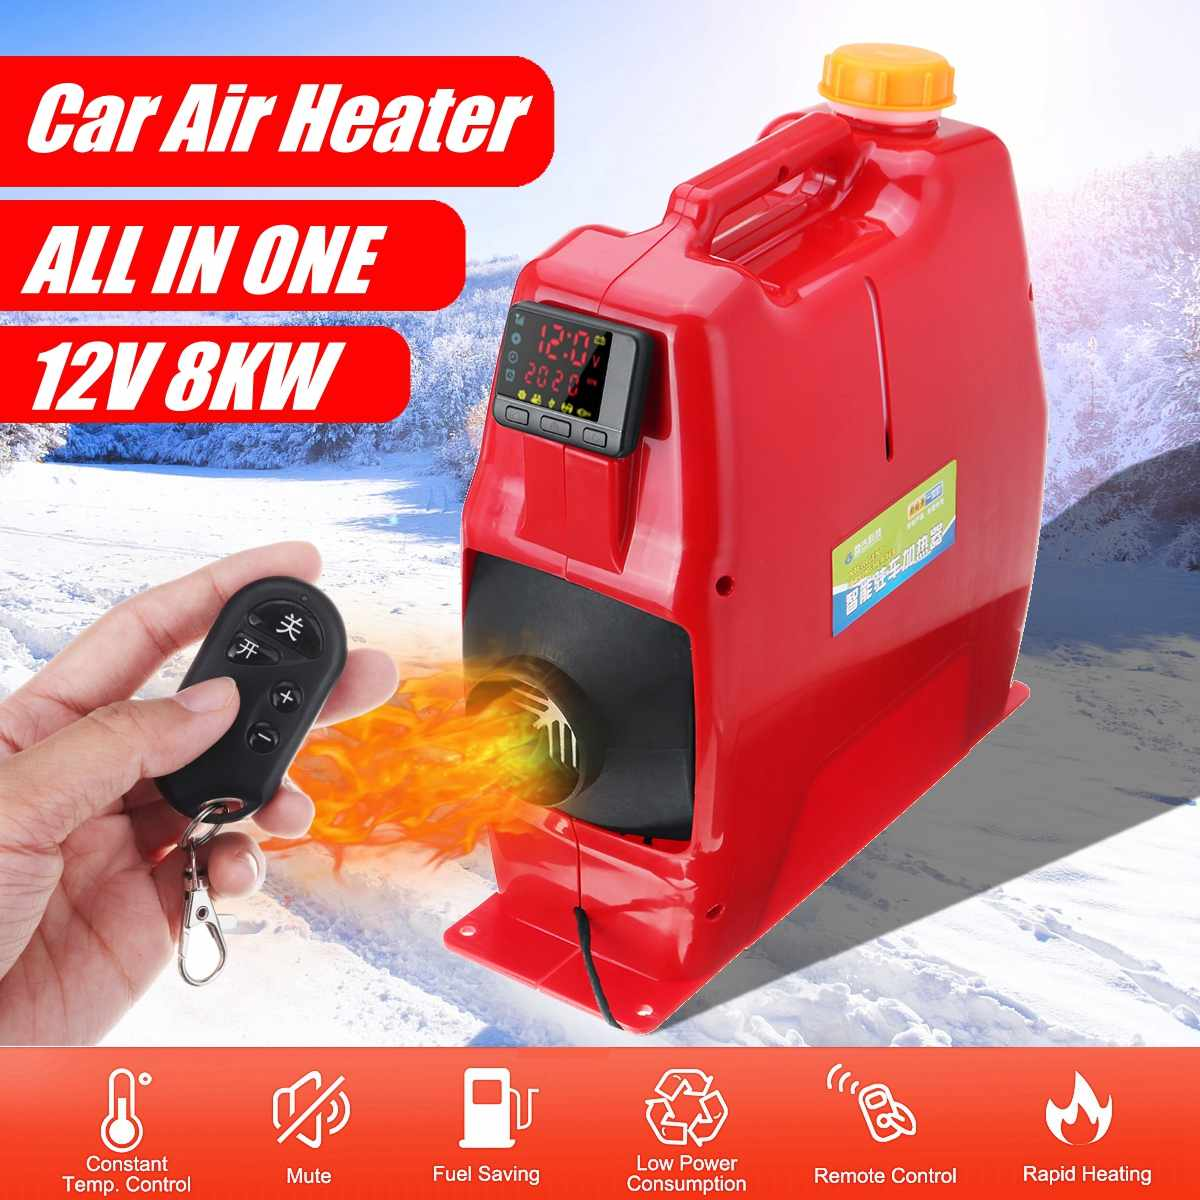 All in One Unit 8KW 12V Car Heating Tool Diesel Air Heater Single Hole LCD Monitor Parking Warmer For Car Truck Bus Boat RV